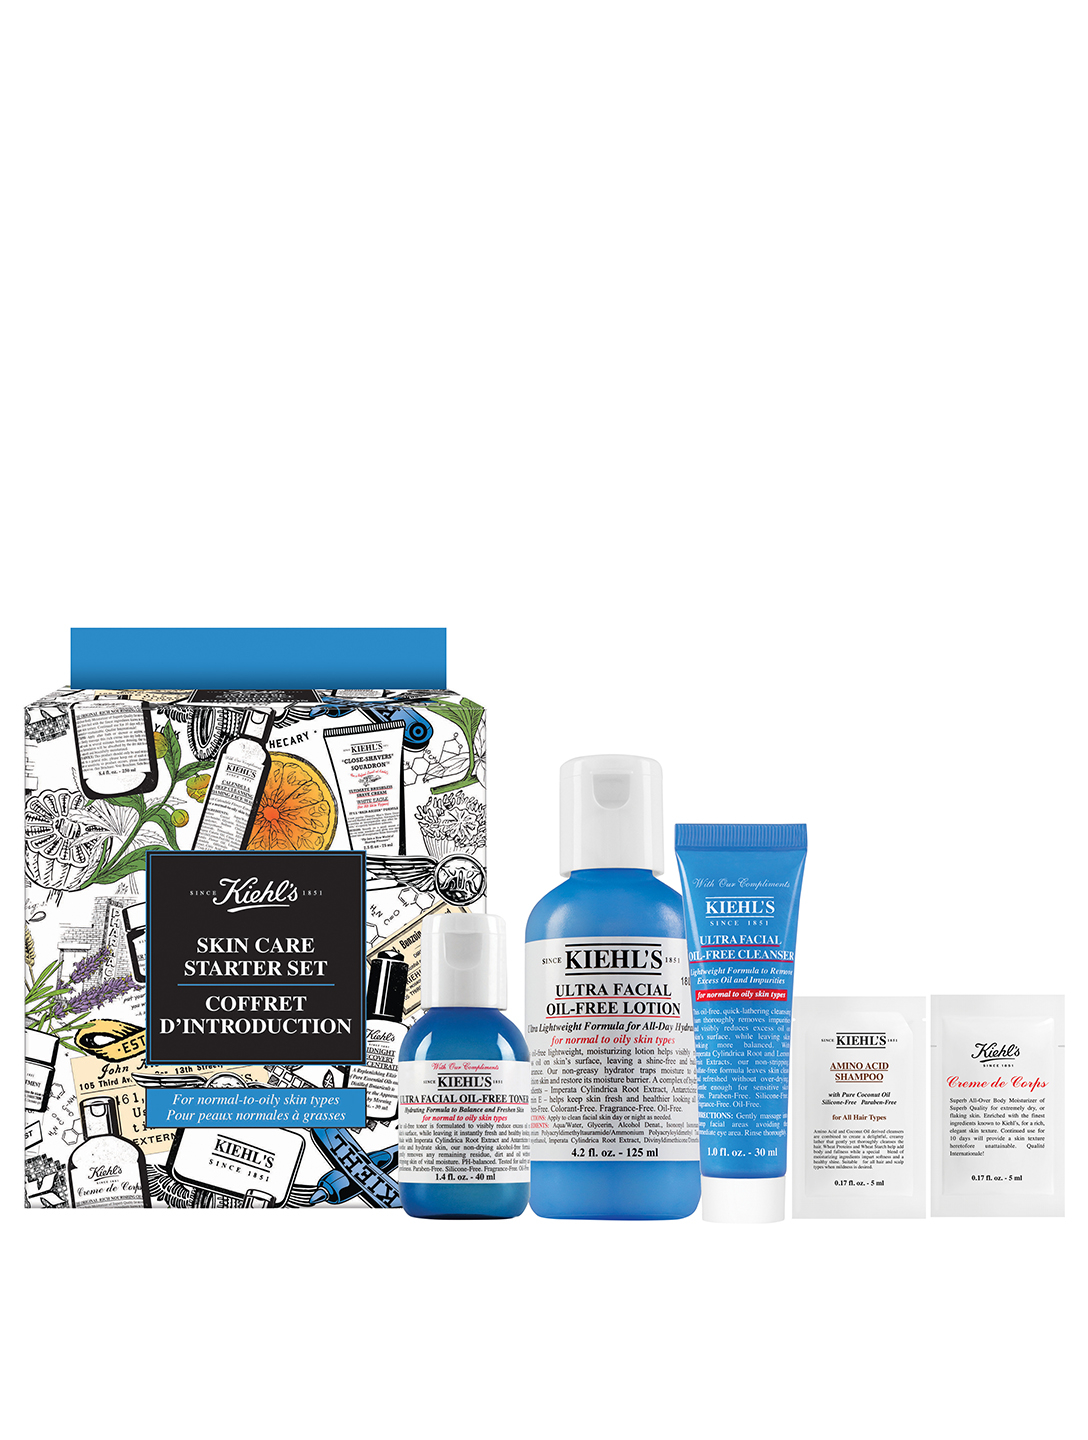 KIEHL'S Skin Care Starter Set - Oil-Free Beauty